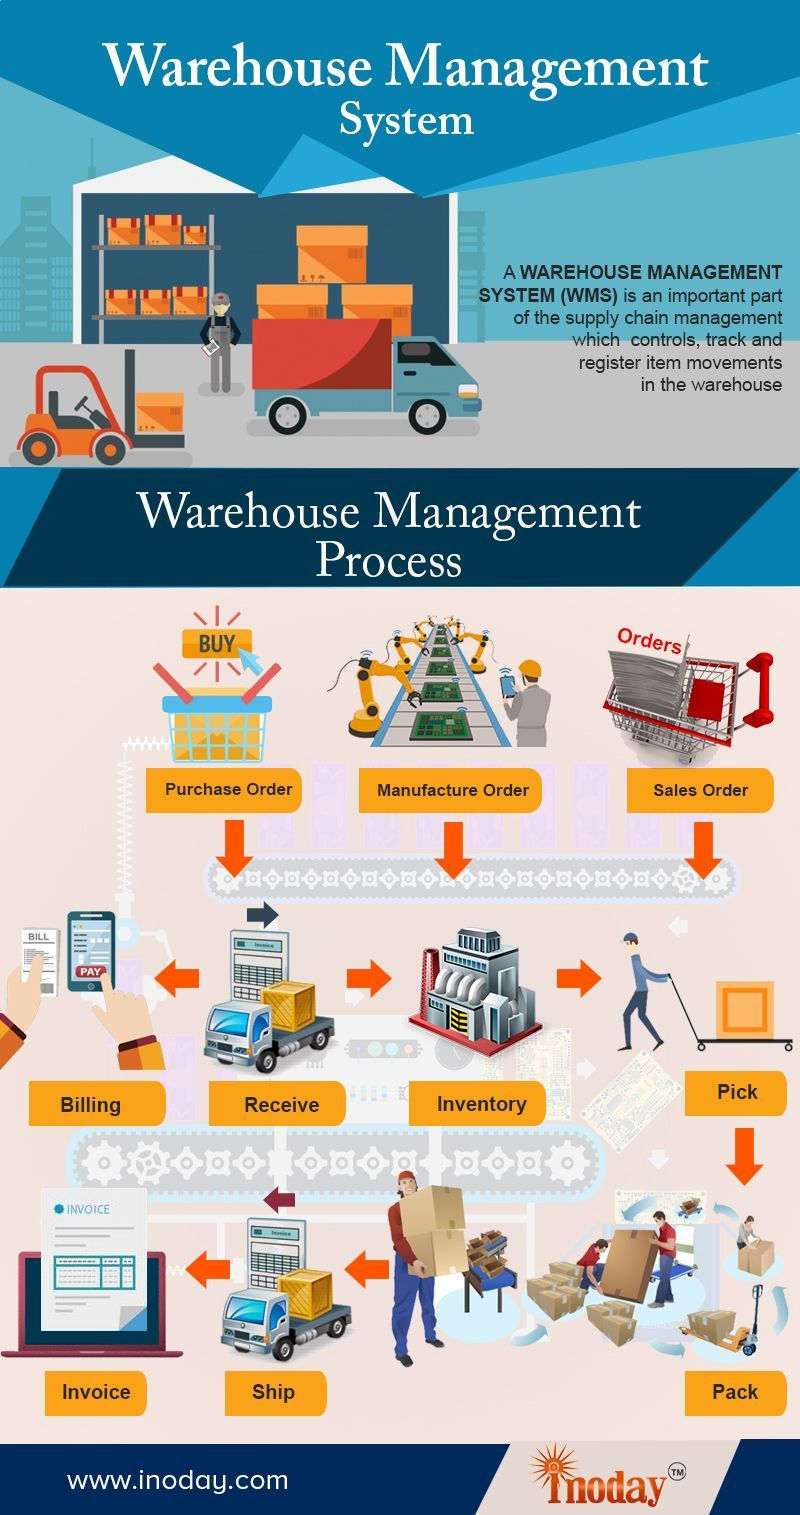 Warehouse Management System Lets You Focus On Your Core Business By Handling Processes Su Warehouse Management System Warehouse Management Logistics Management